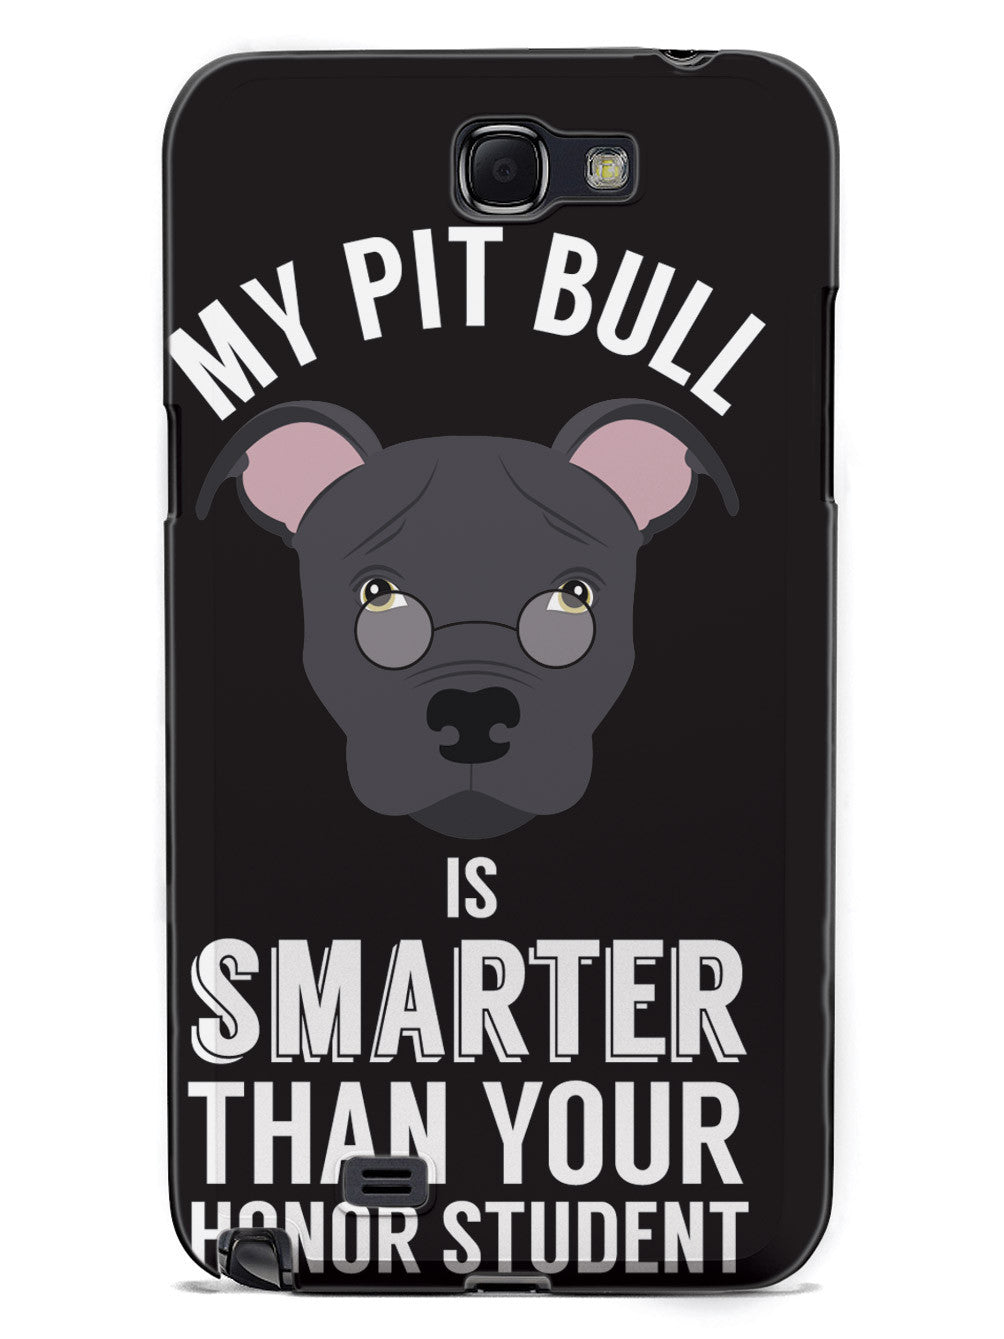 Smarter Than Your Honor Student - Pitbull Case